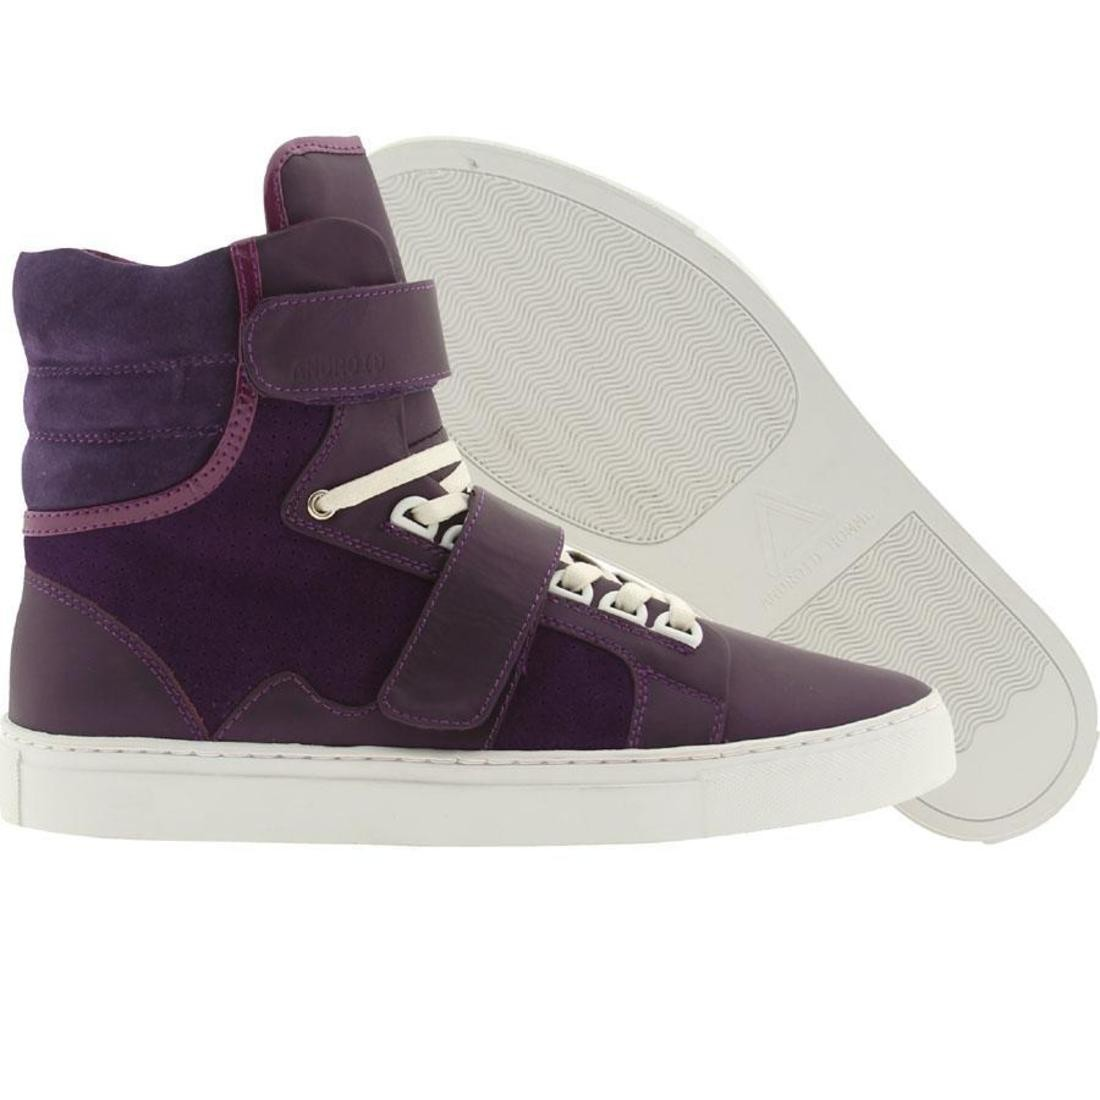 Android Homme Propulsion High (purple) - PYS.com Exclusive